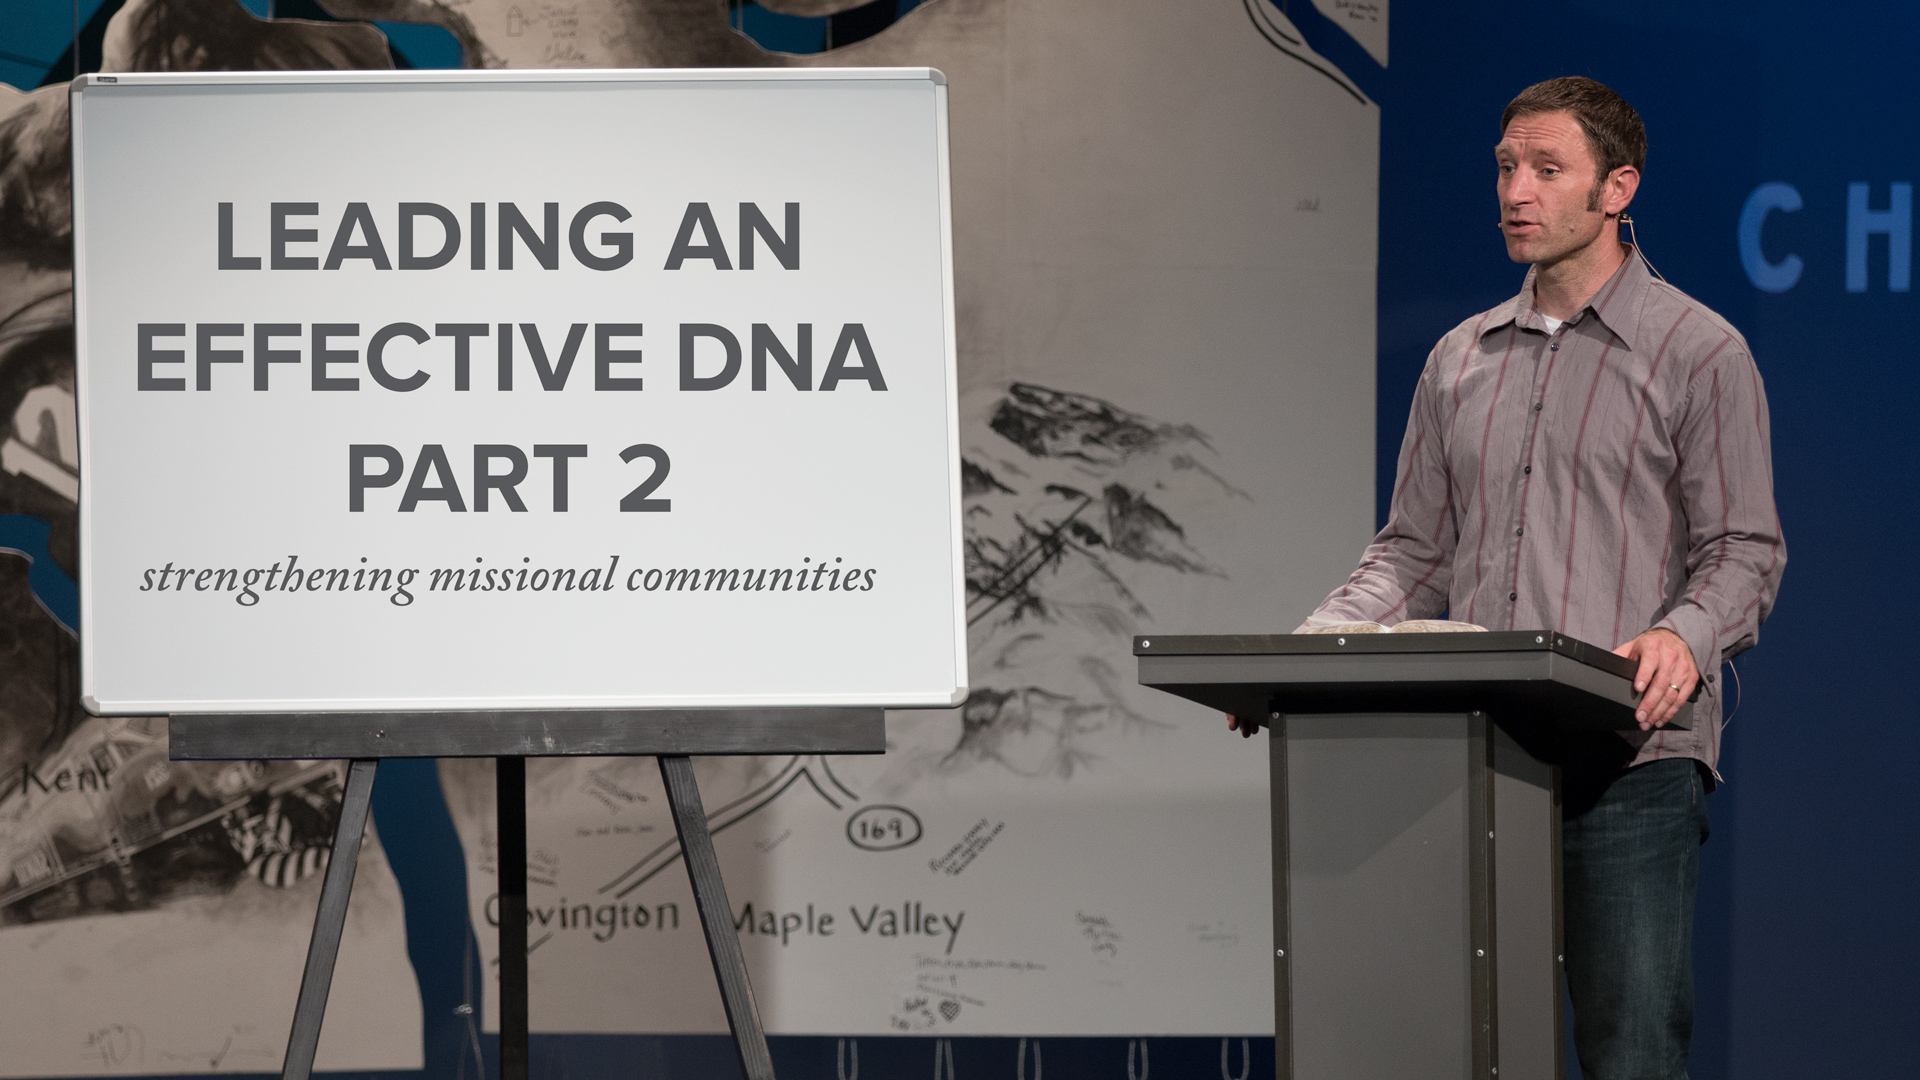 Leading an Effective DNA, Pt 2